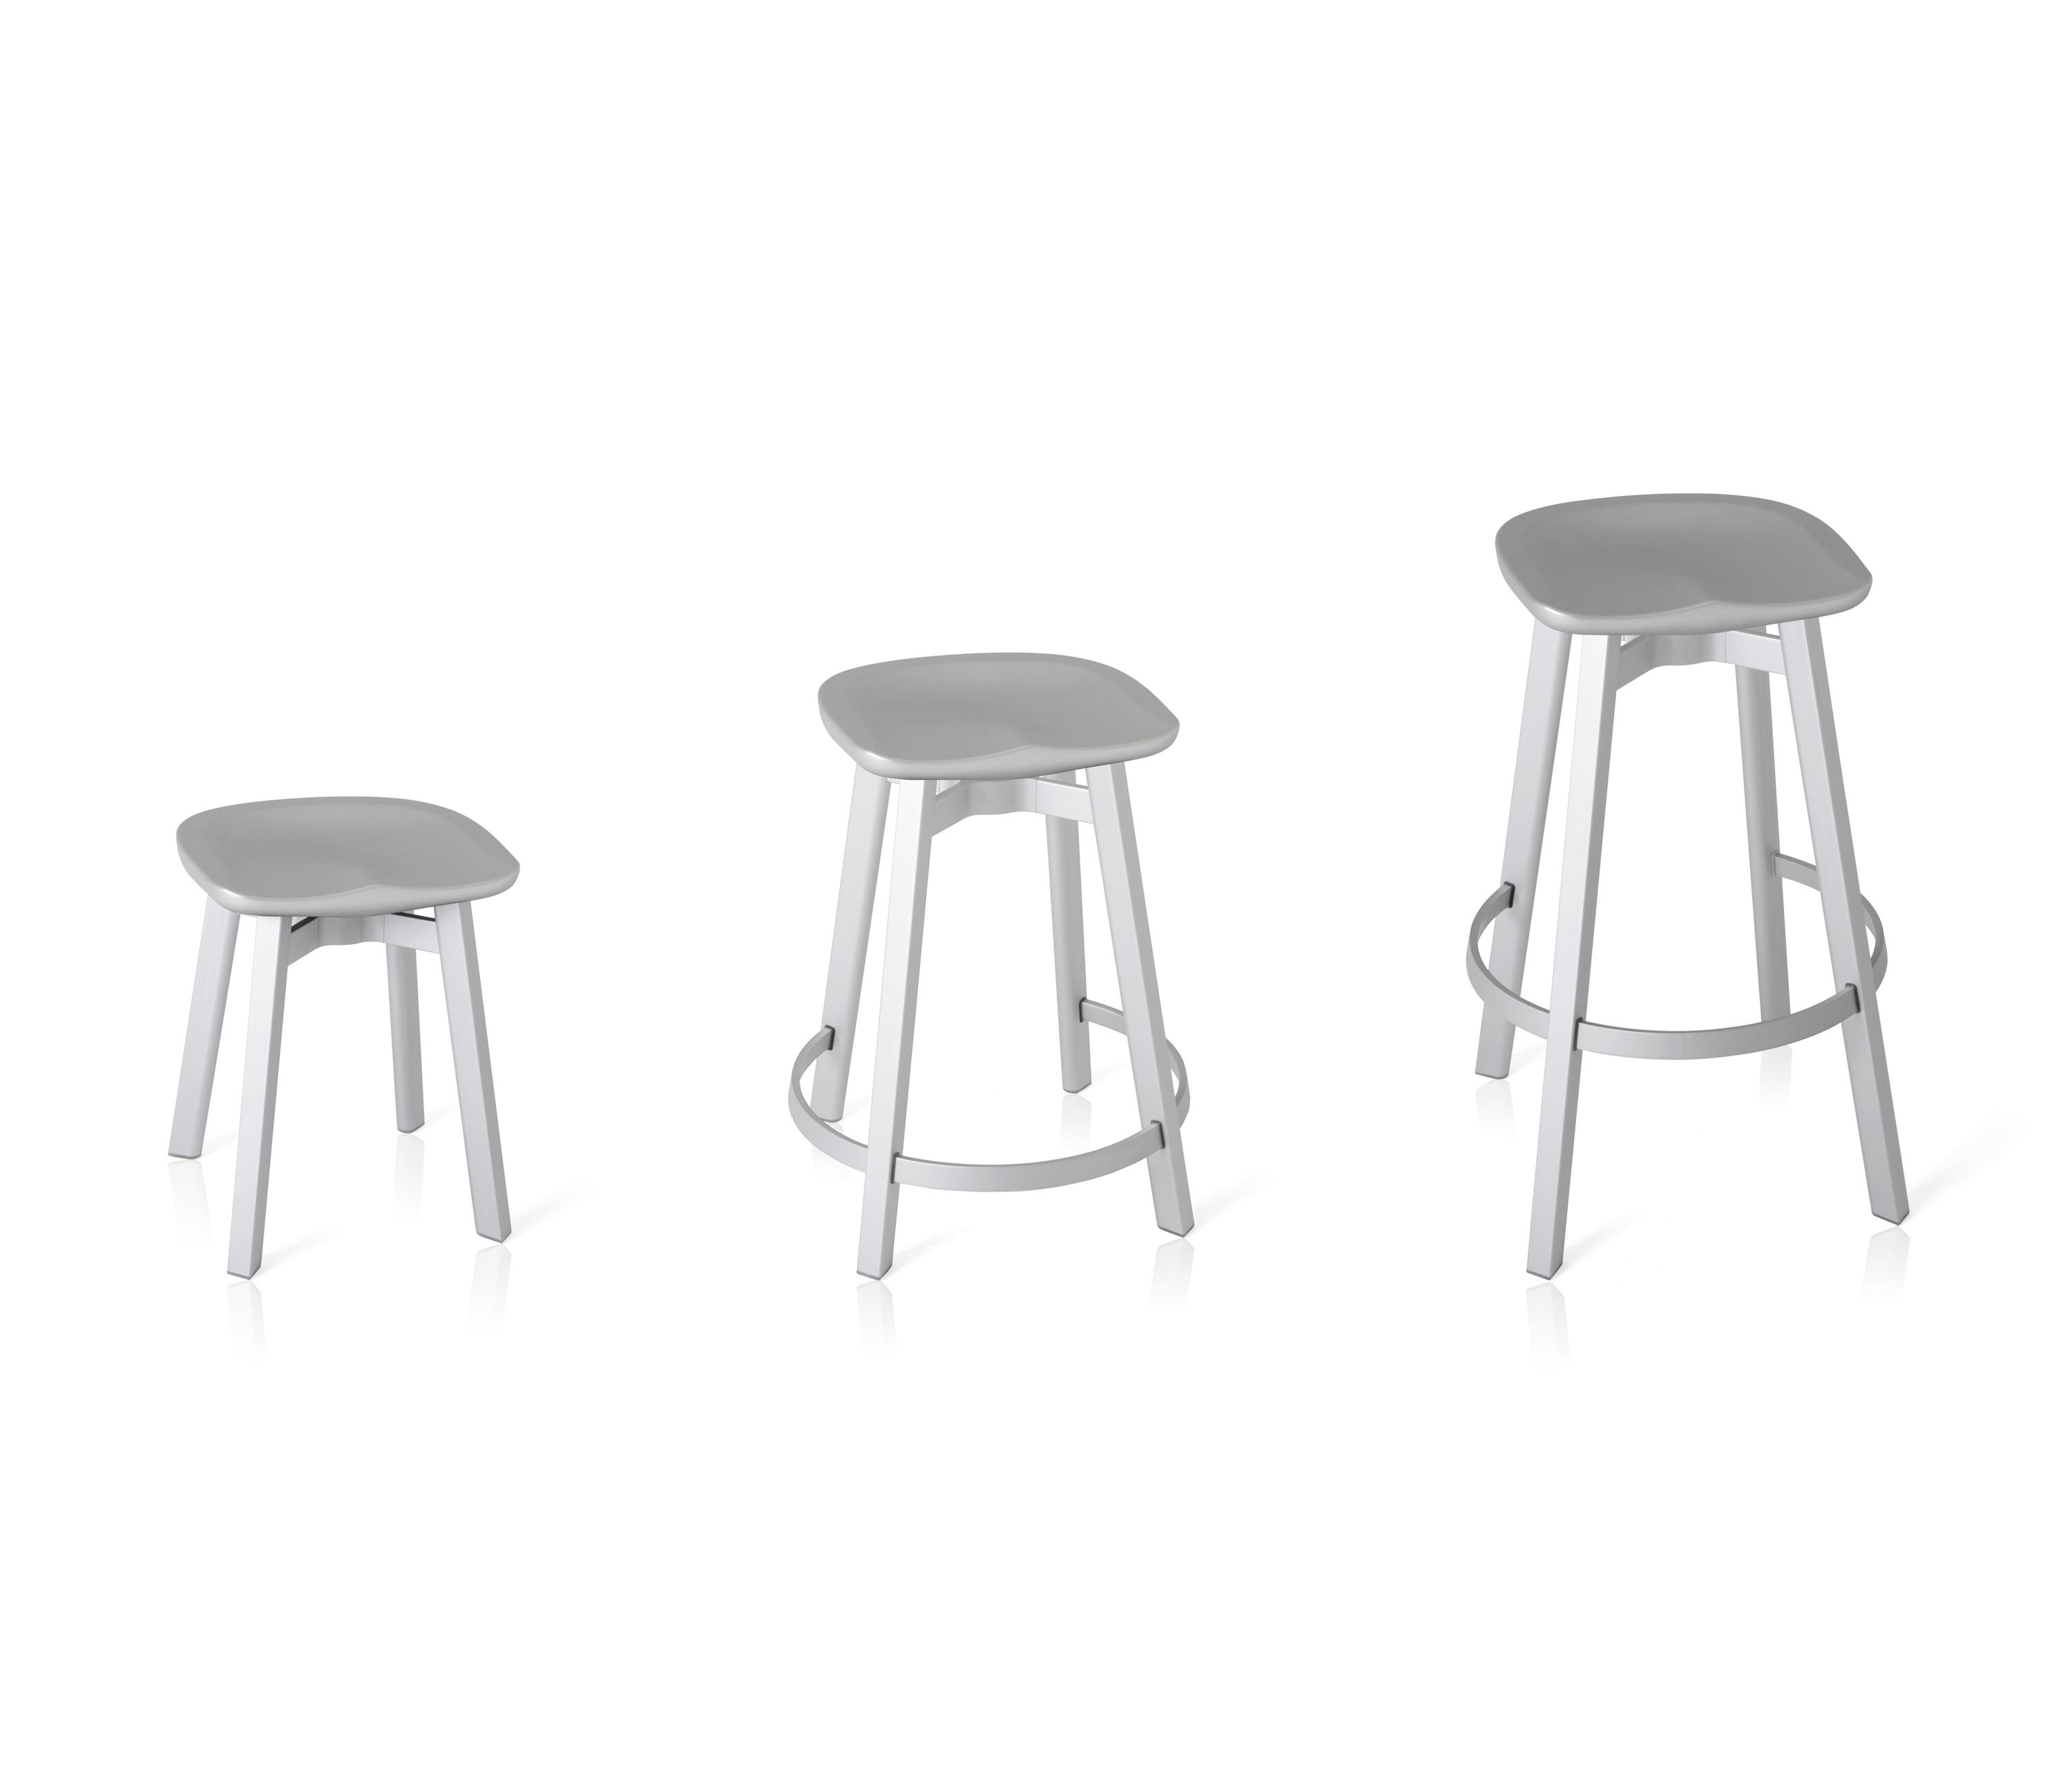 EMECO SU SMALL STOOL Stools from emeco